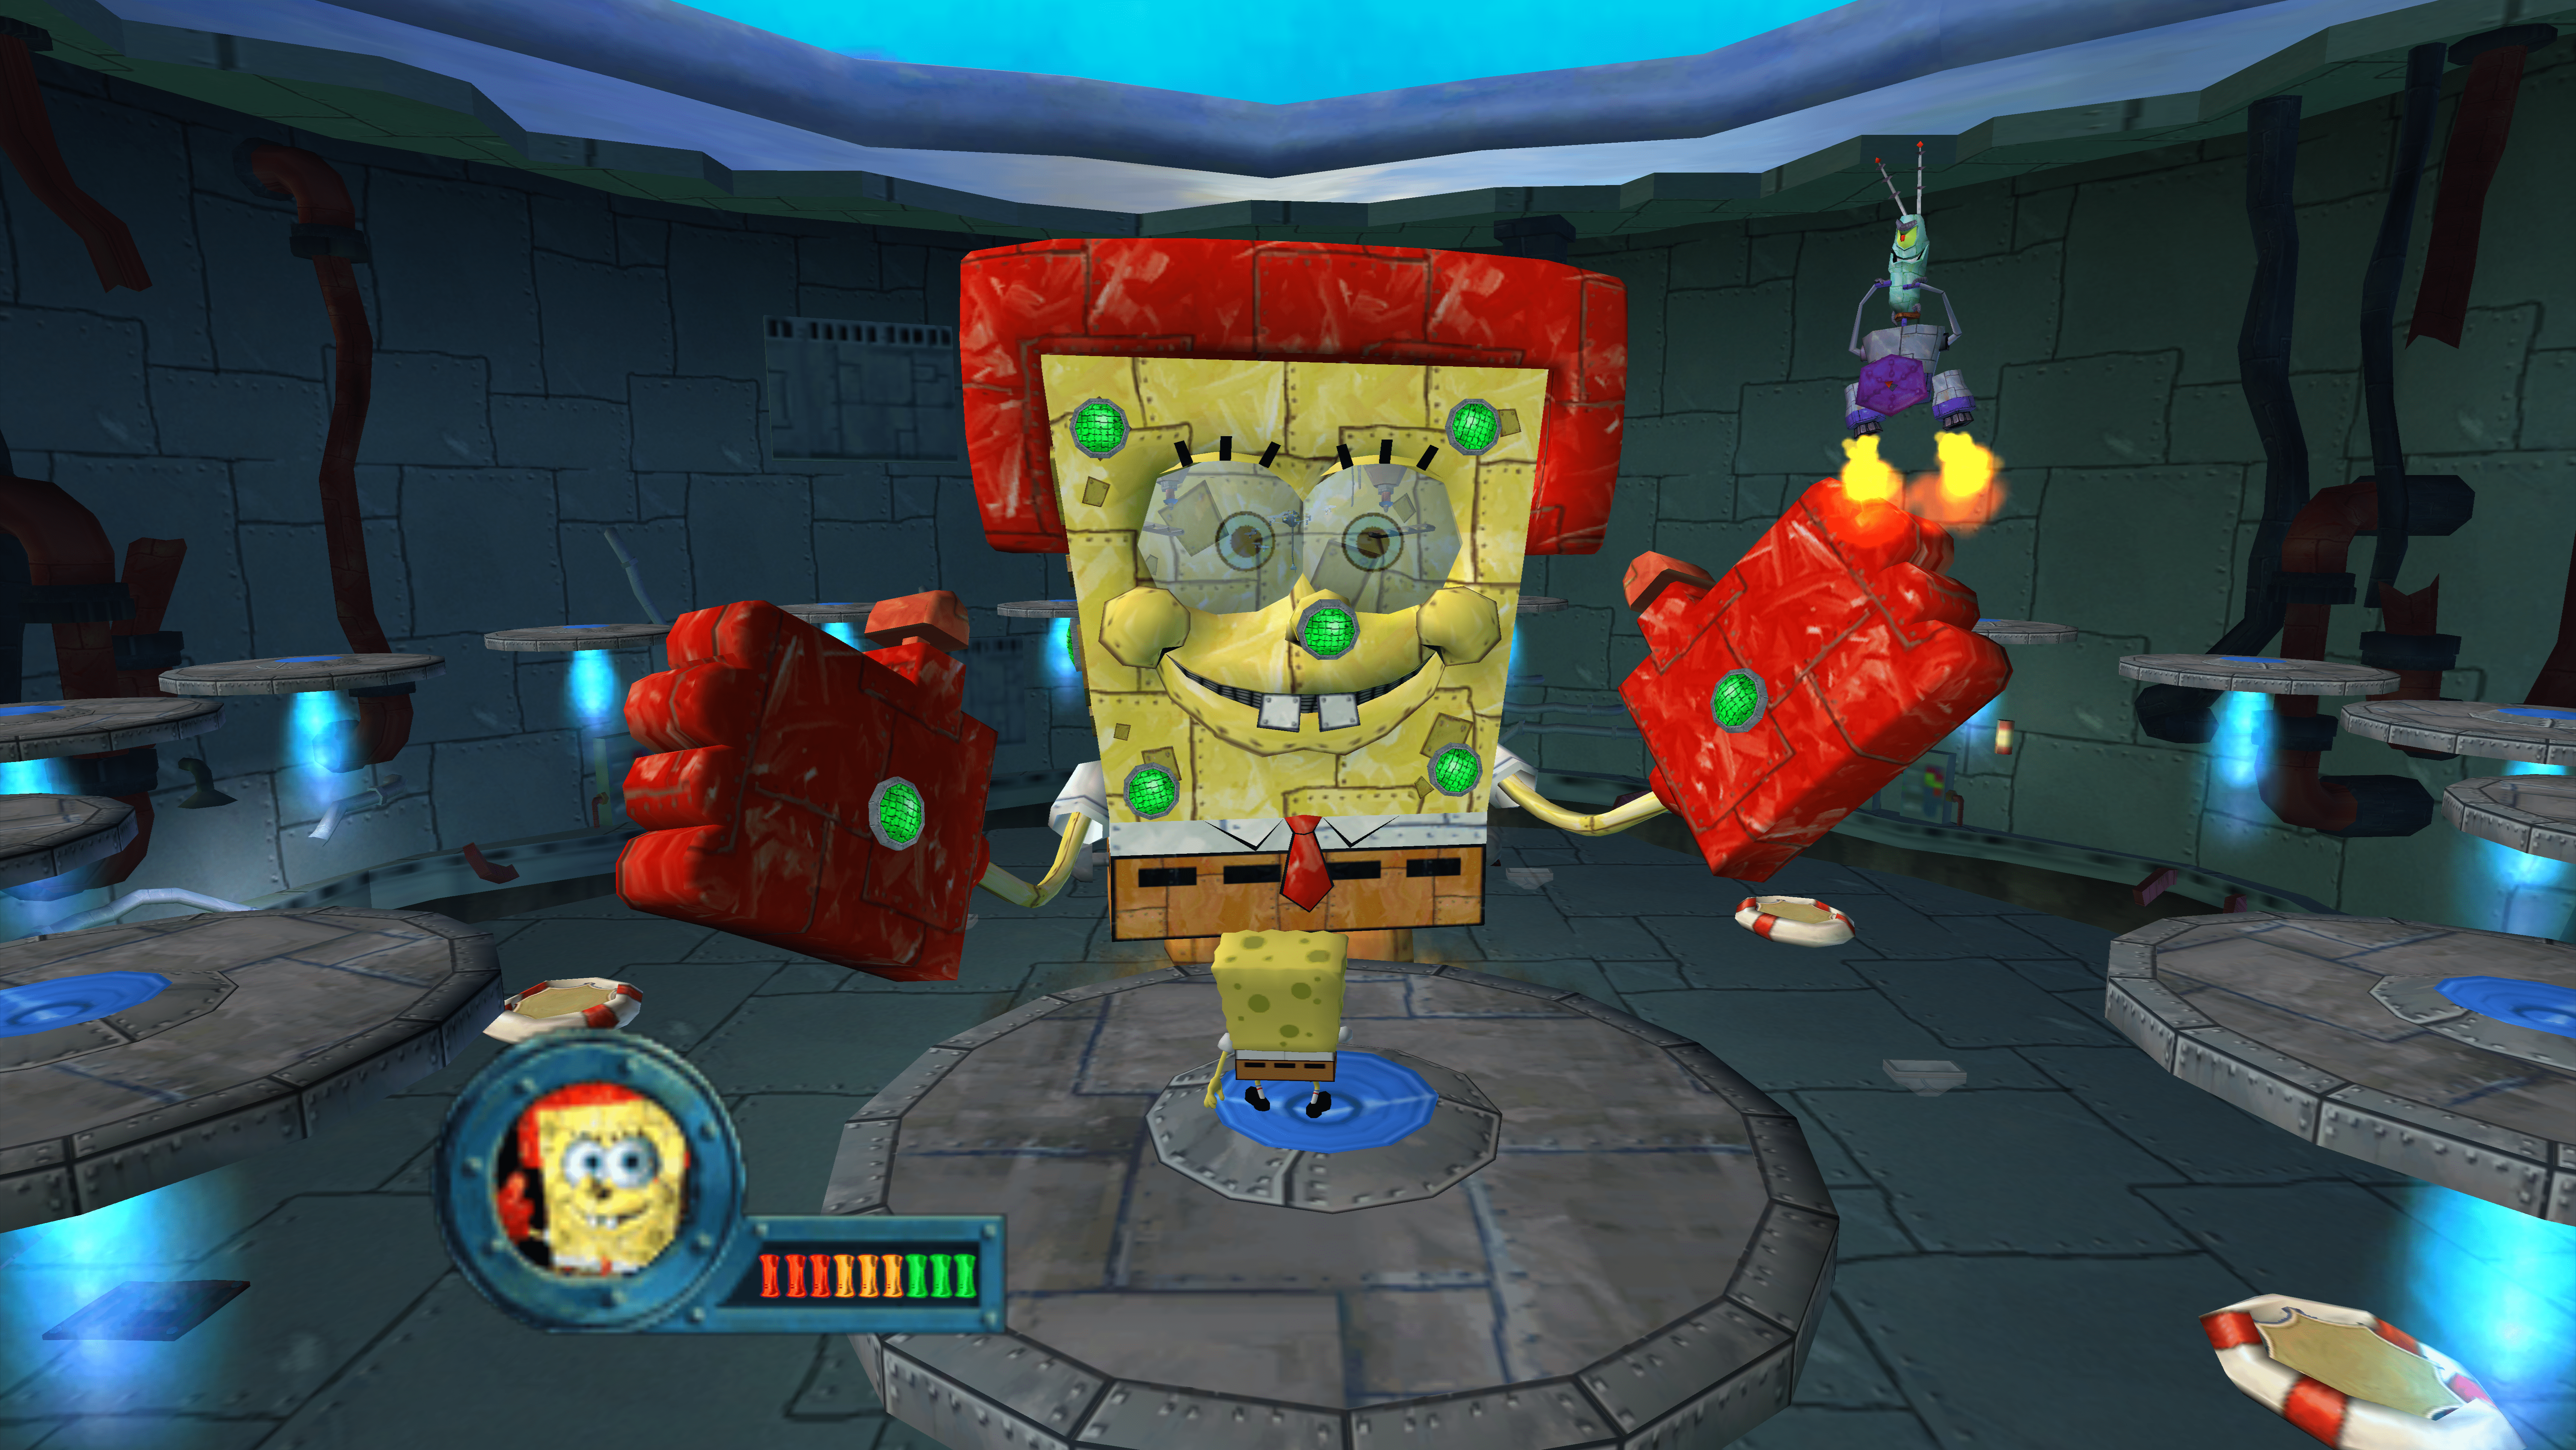 File:SpongebotSteelPants.png